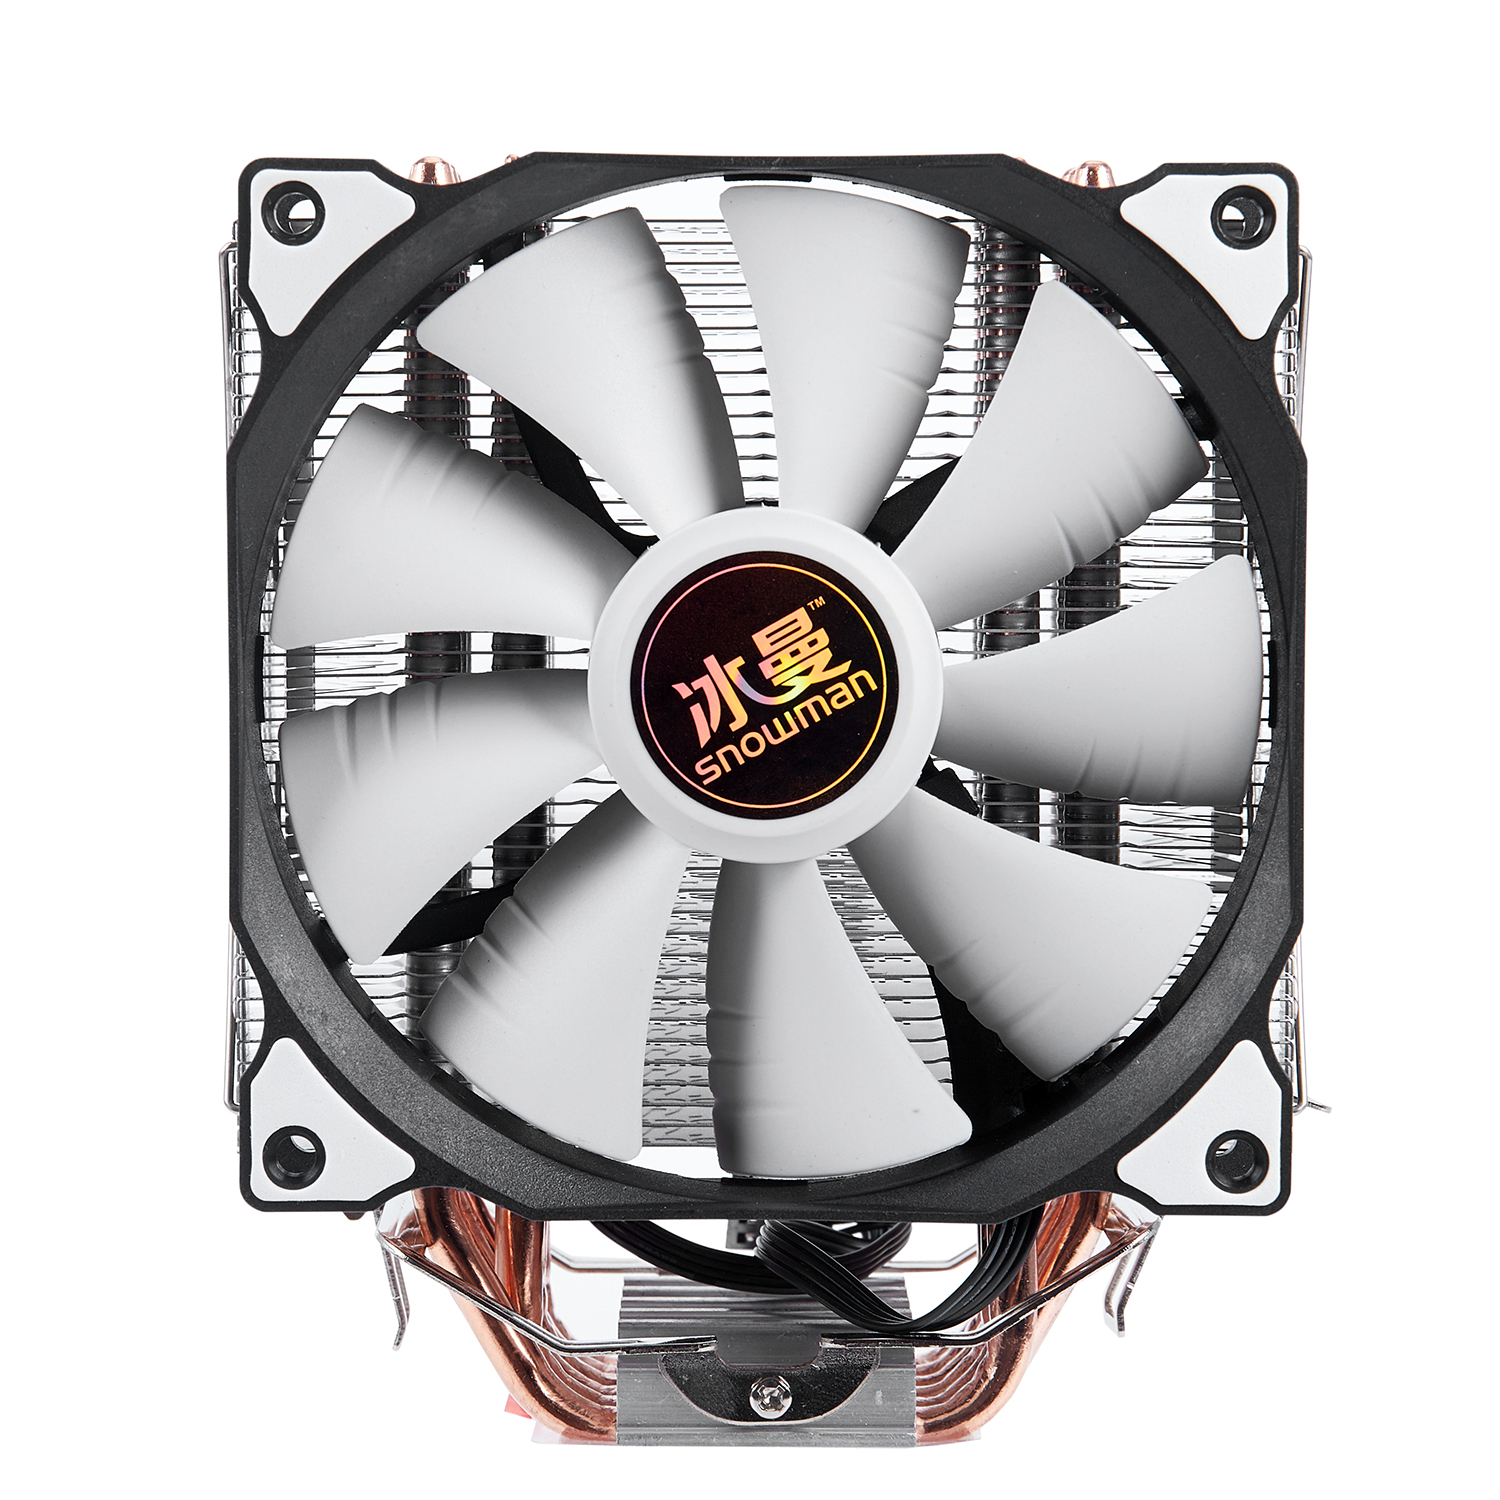 SNOWMAN 4 PIN CPU cooler 6 heatpipe Single/Double <font><b>fan</b></font> cooling <font><b>12</b></font> <font><b>cm</b></font> <font><b>fan</b></font> LGA775 1151 115x 1366 support Intel AMD image